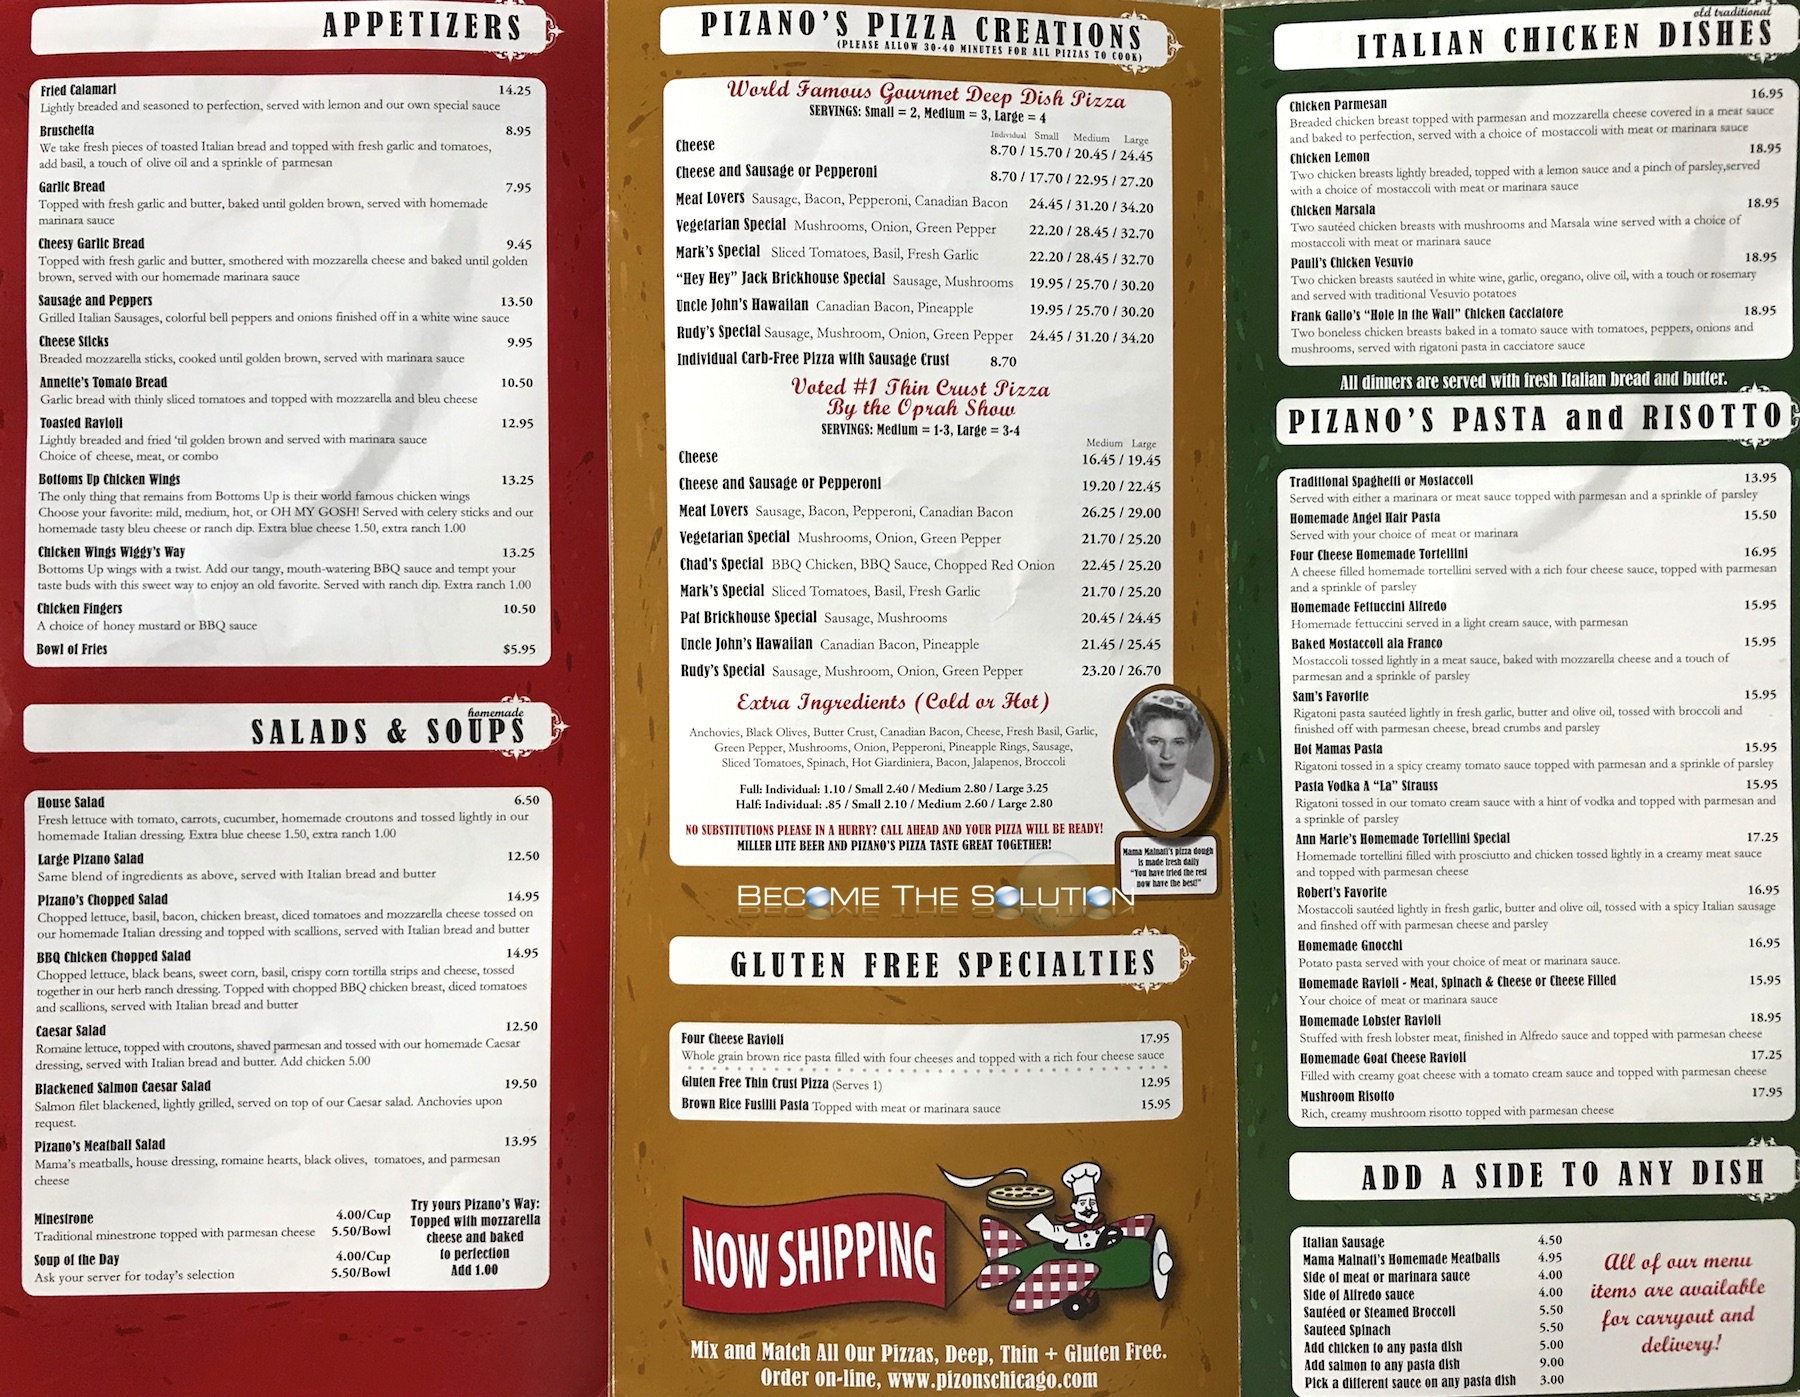 Pizano's pizza chicago menu 1